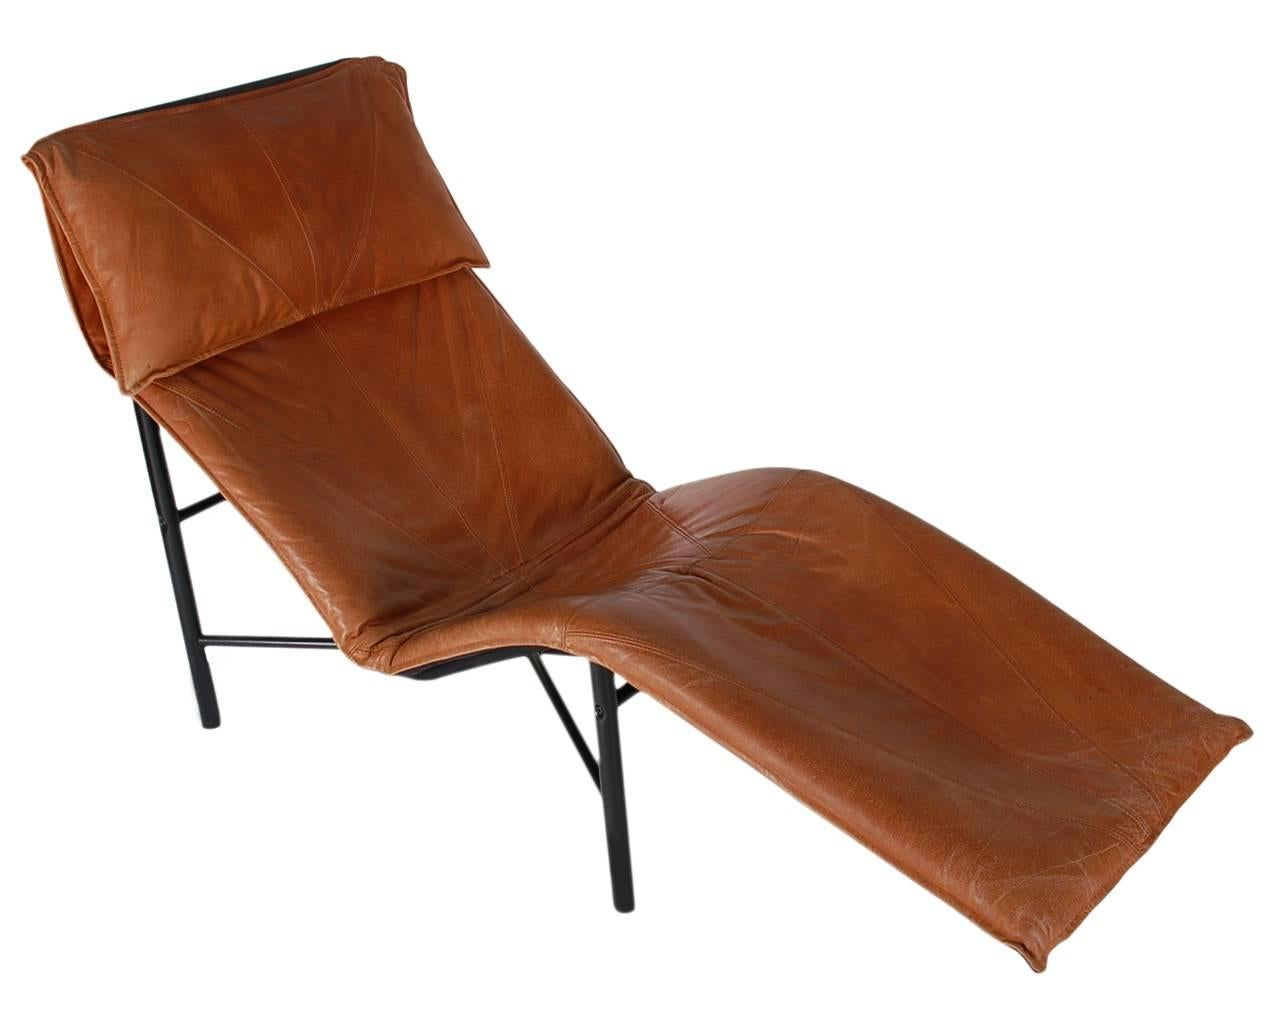 Scandinavian Modern Midcentury Danish Modern Brown Leather Chaise Lounge Chair by Tord Björklund For Sale  sc 1 st  1stDibs : leather chaise lounge chair - Cheerinfomania.Com